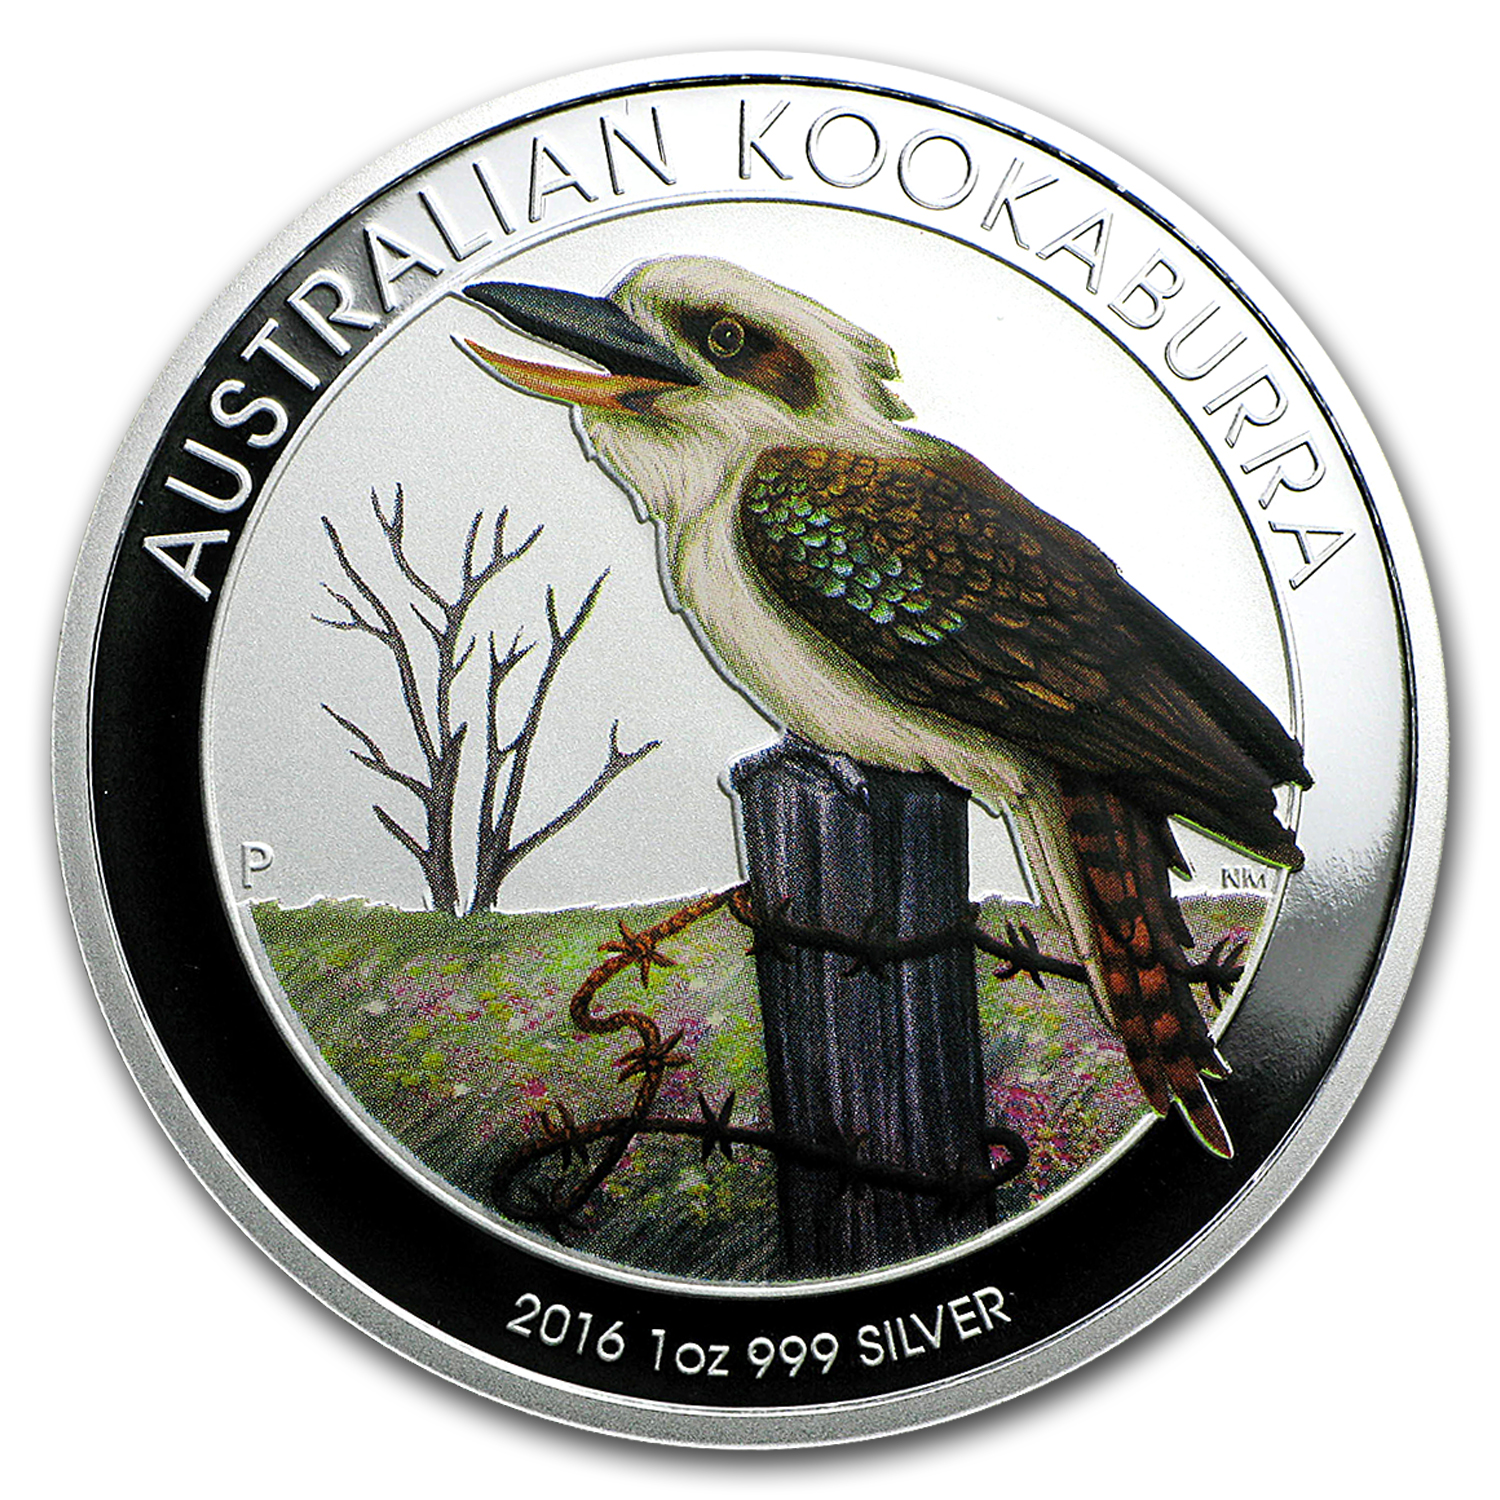 2016 AUS 1 oz Silver Colorized Kookaburra (Berlin Coin Show)